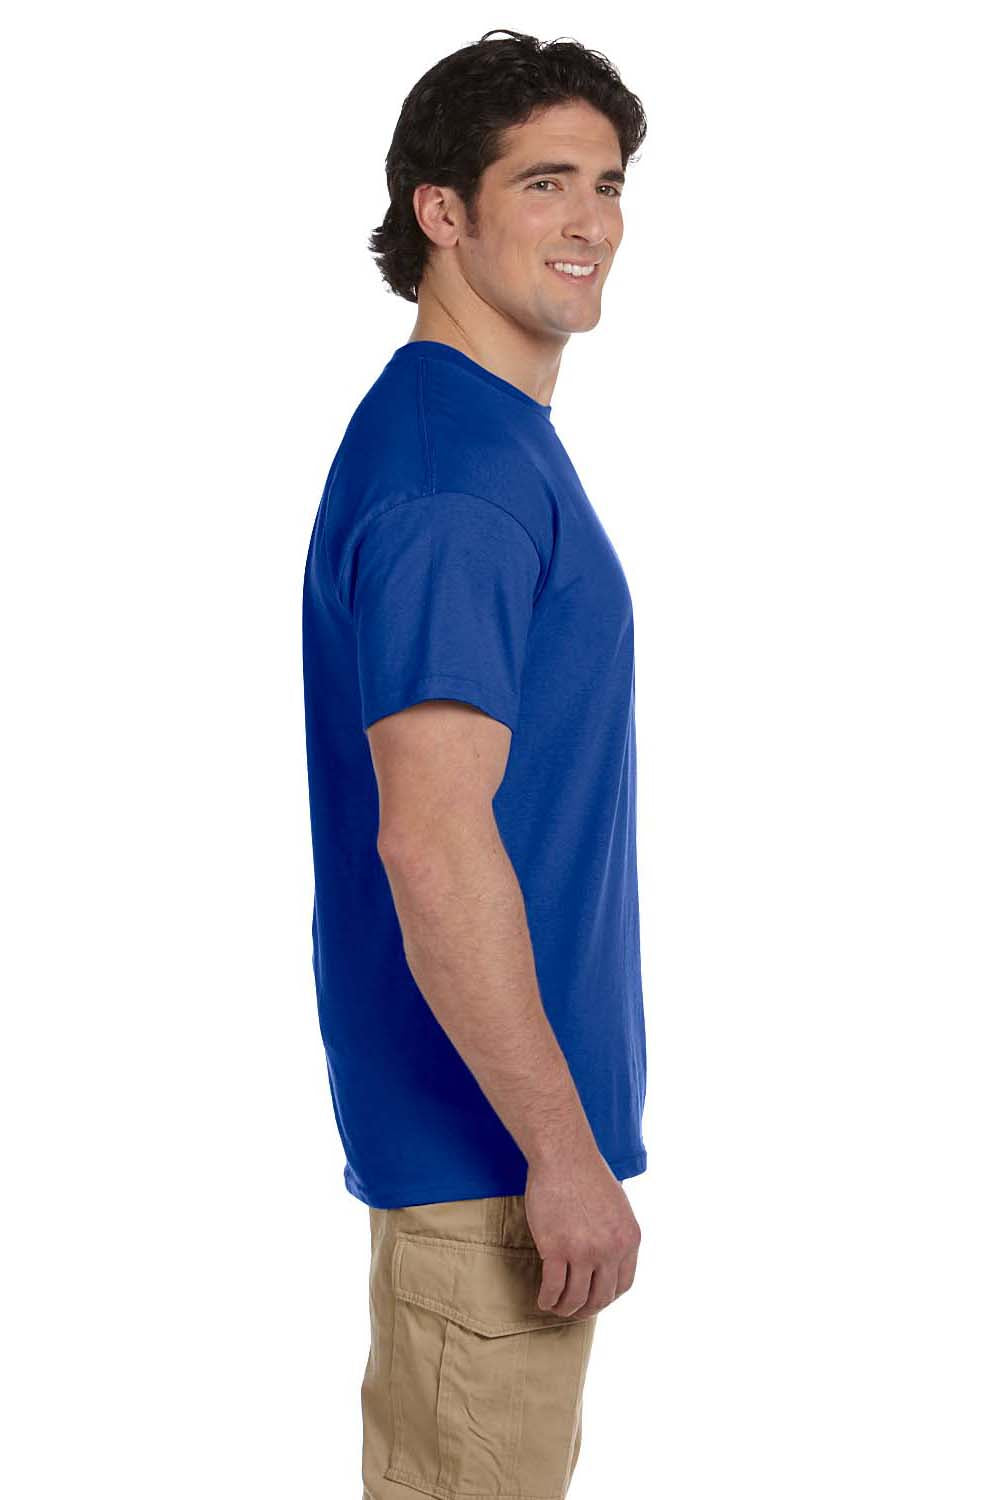 Hanes 5170 Mens EcoSmart Short Sleeve Crewneck T-Shirt Royal Blue Side